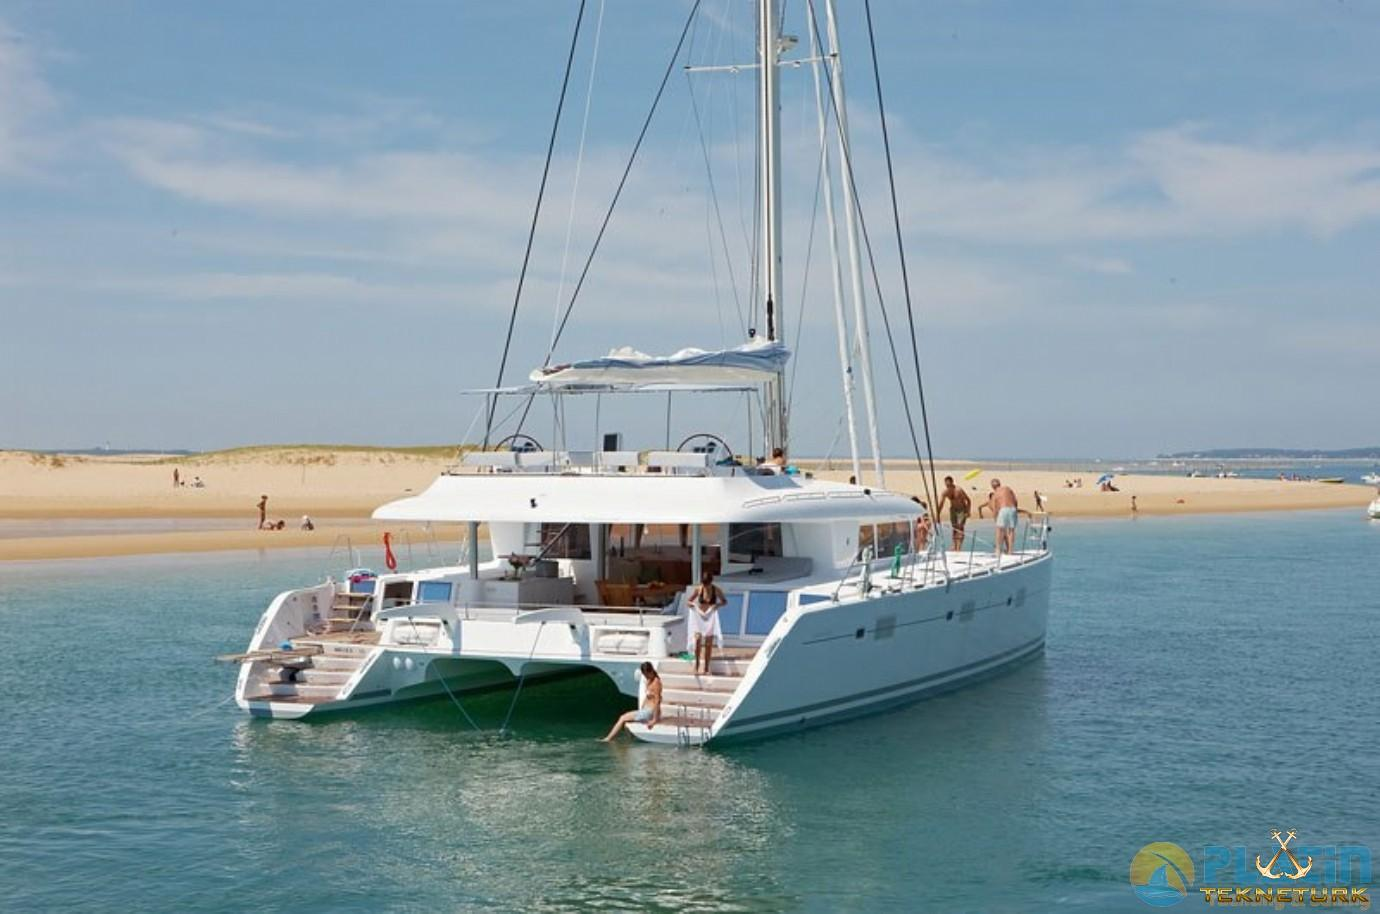 LAGOON 620 Luxury catamaran